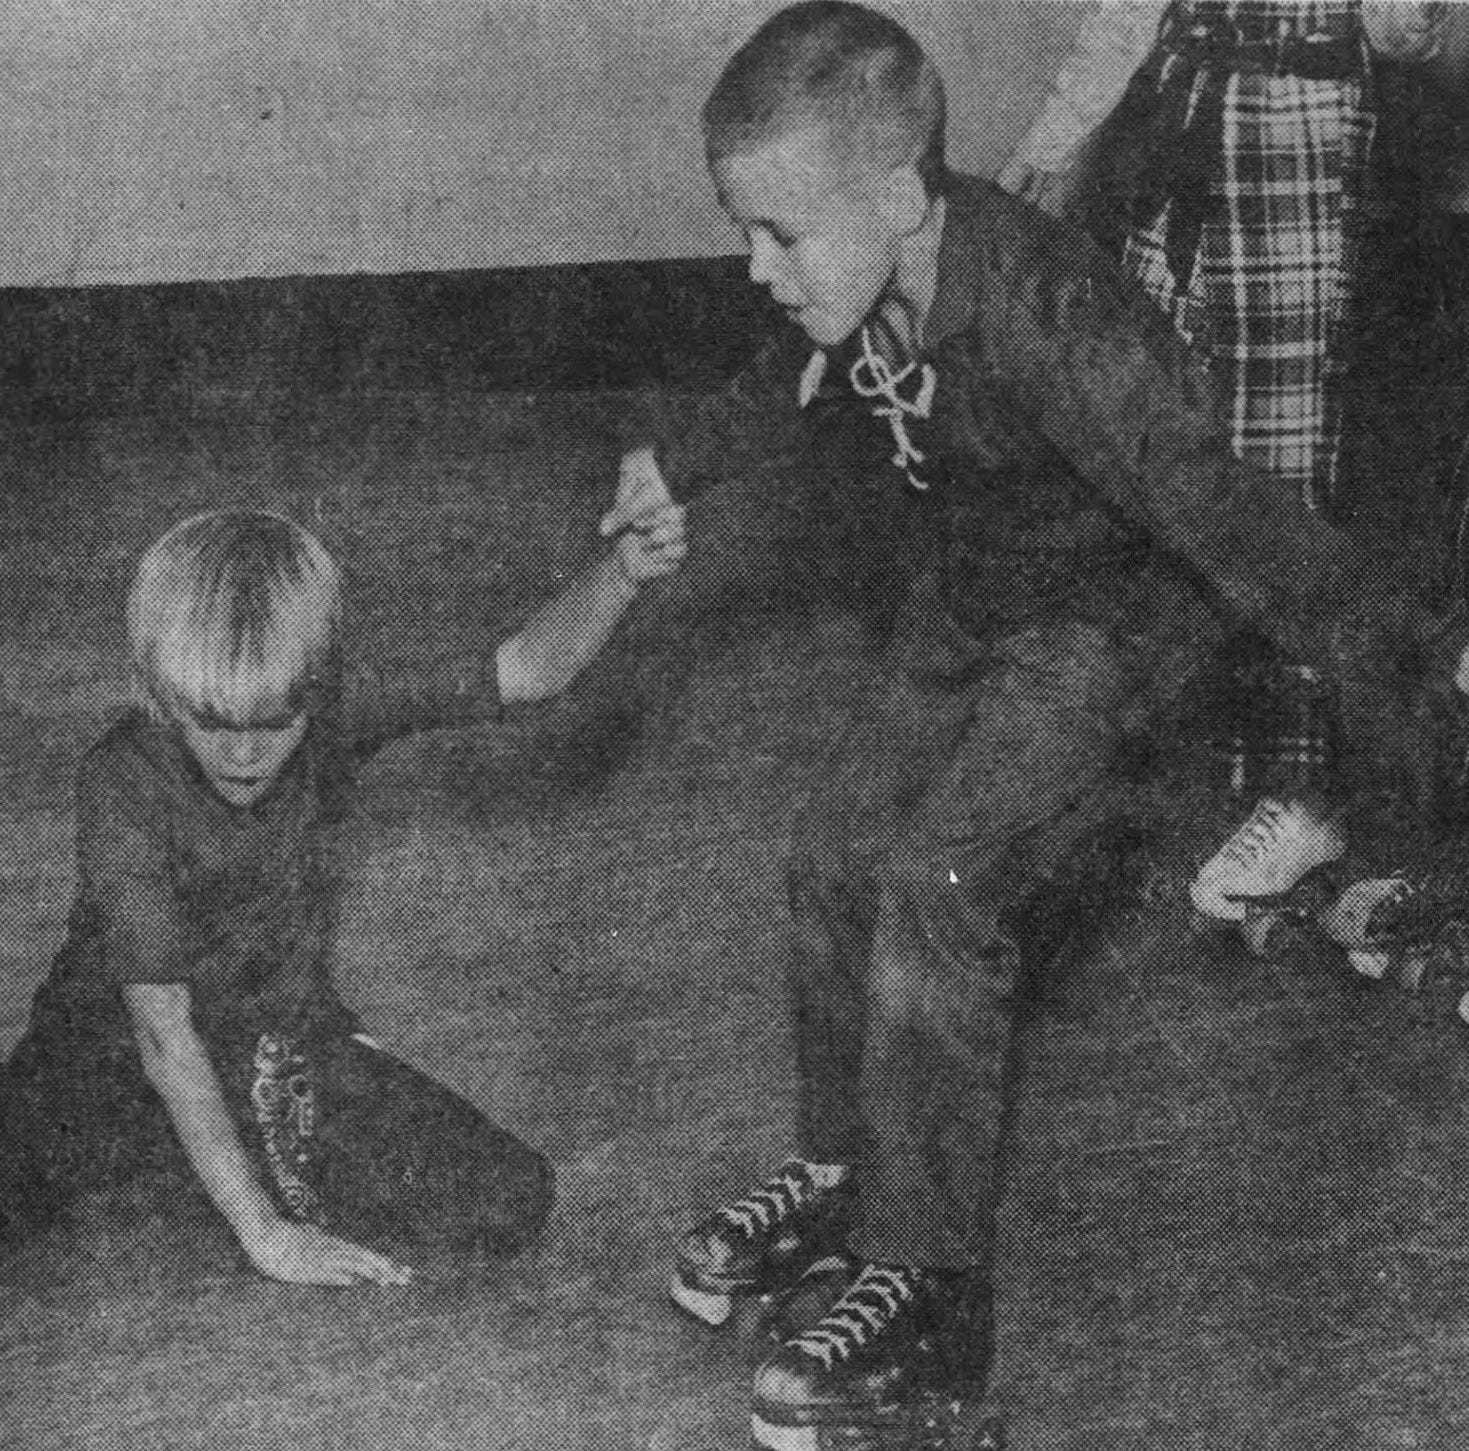 Looking Back: Sioux Falls skaters enjoyed West Soo Roller Rink from WWII through '80s